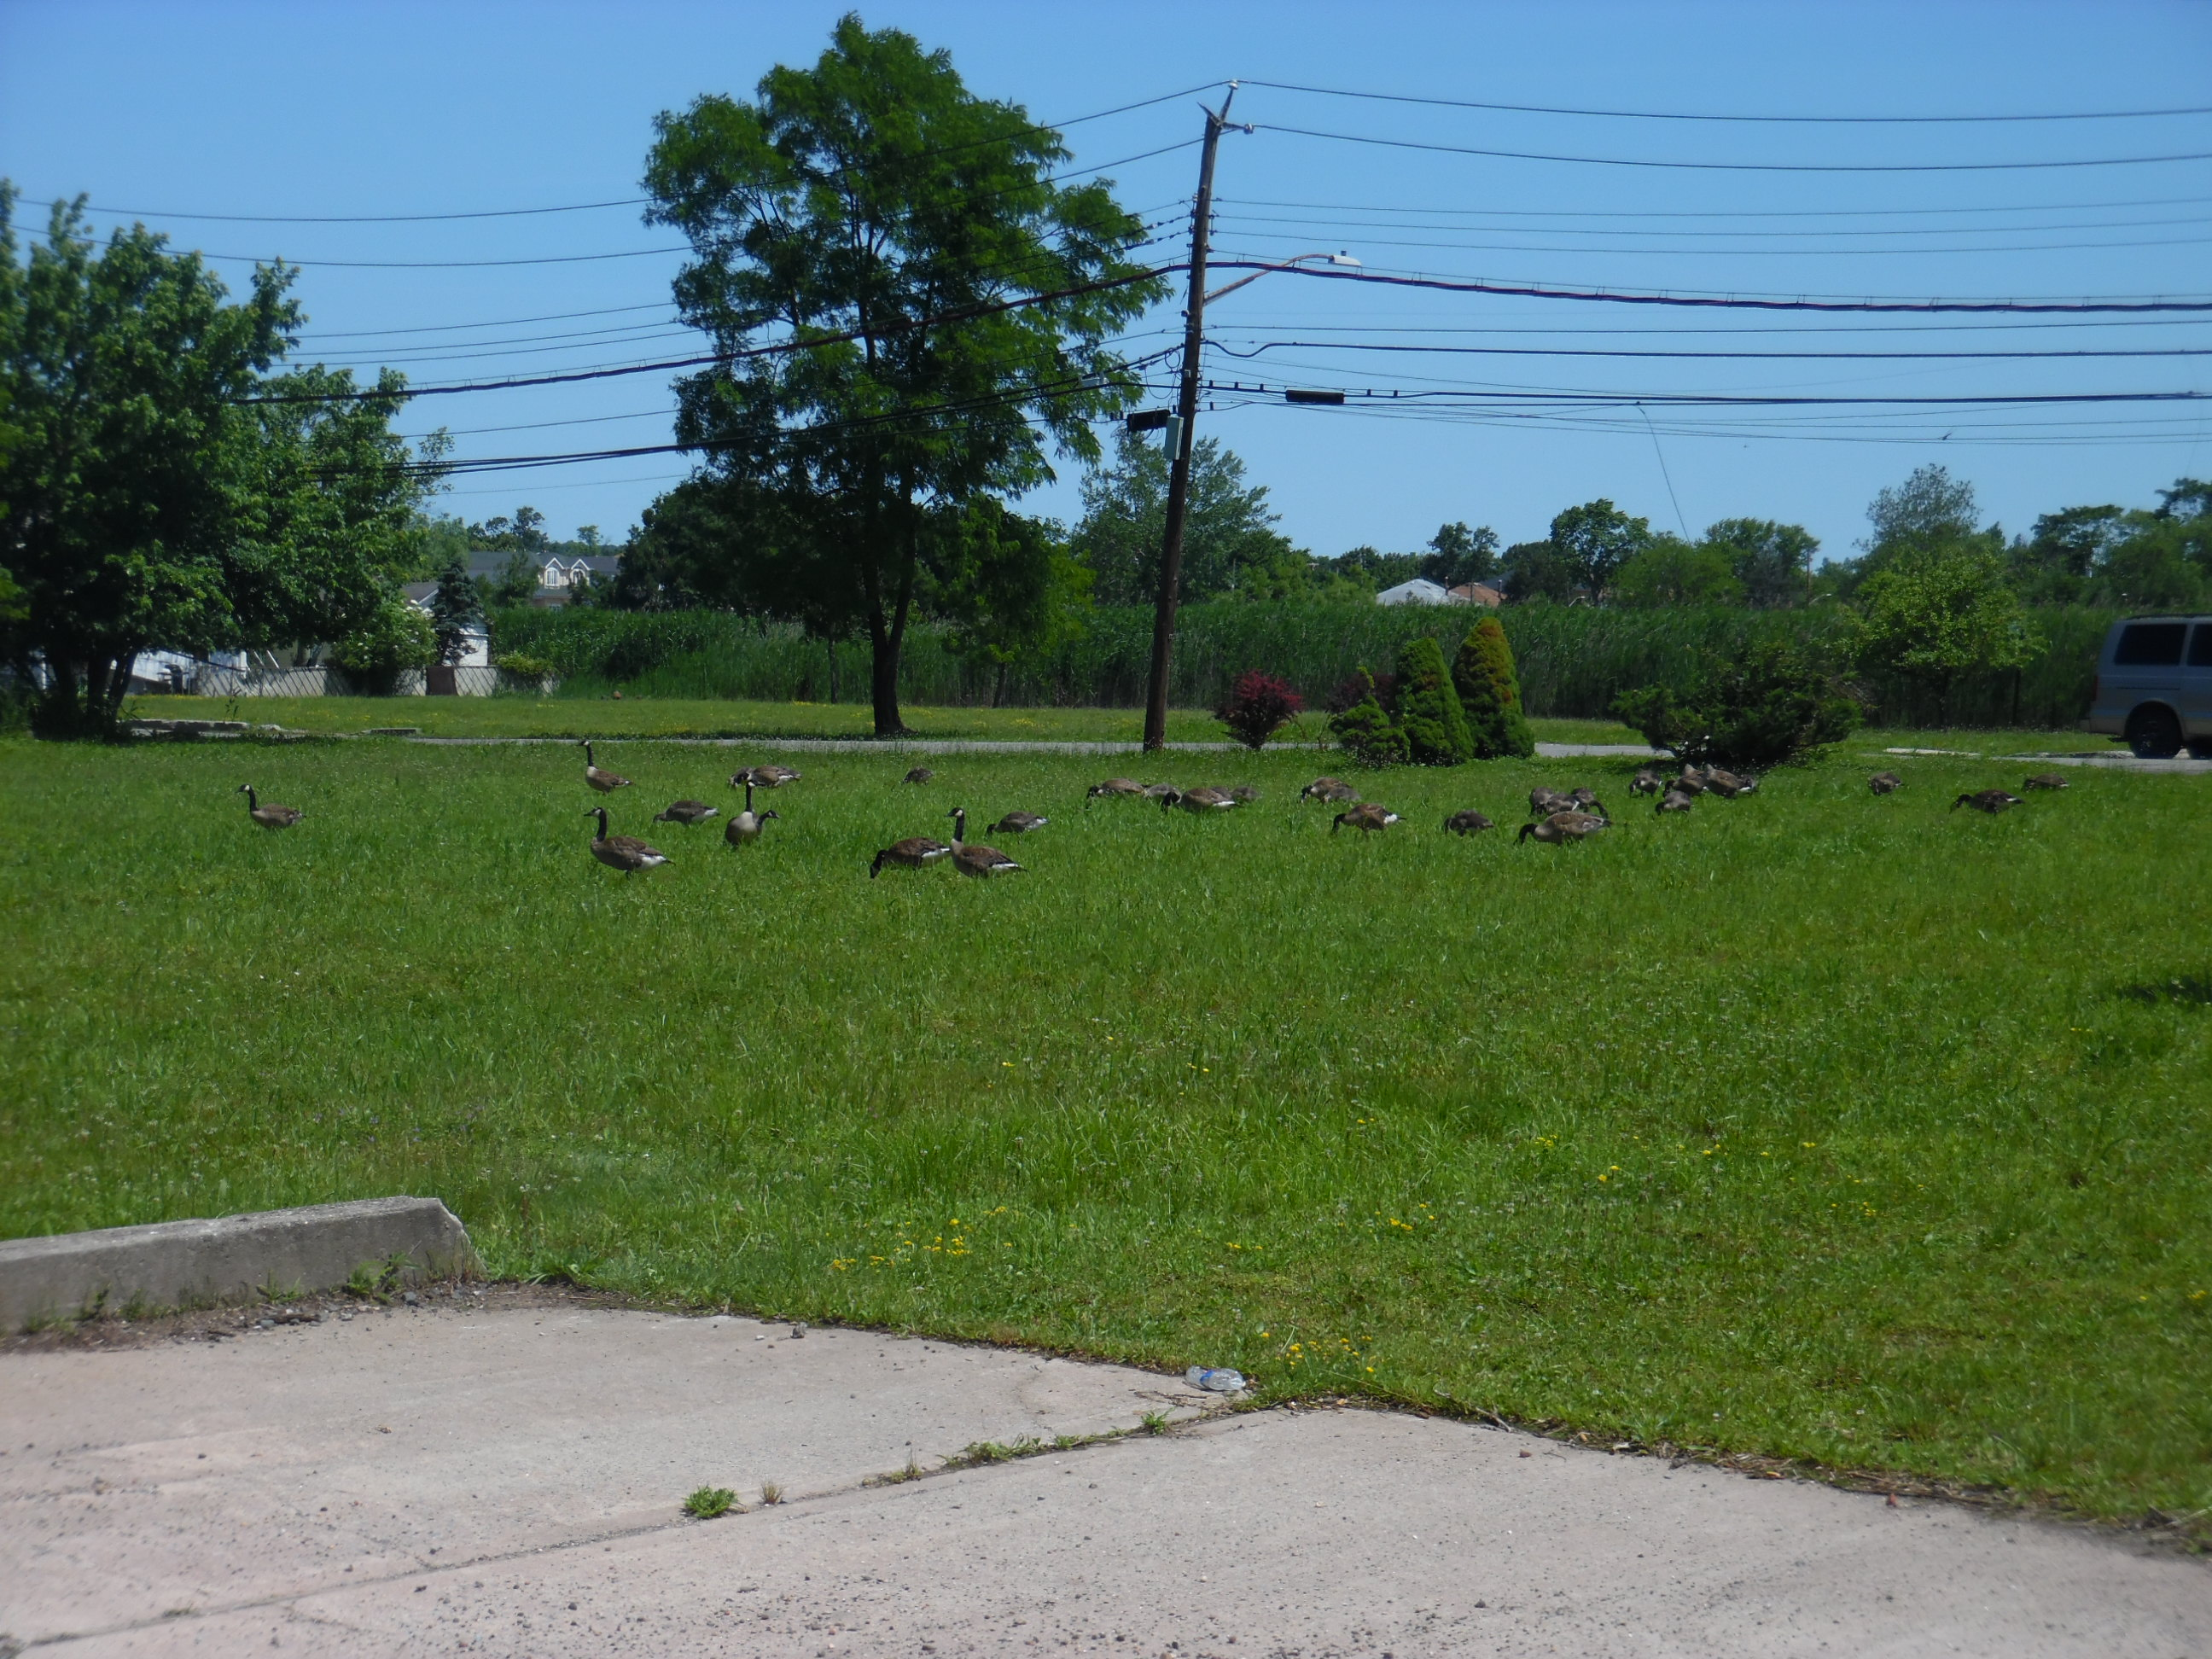 Paved driveway in foreground. Behind, Canada Geese on grass, trees, telephone wires. A house barely visible in the distance.